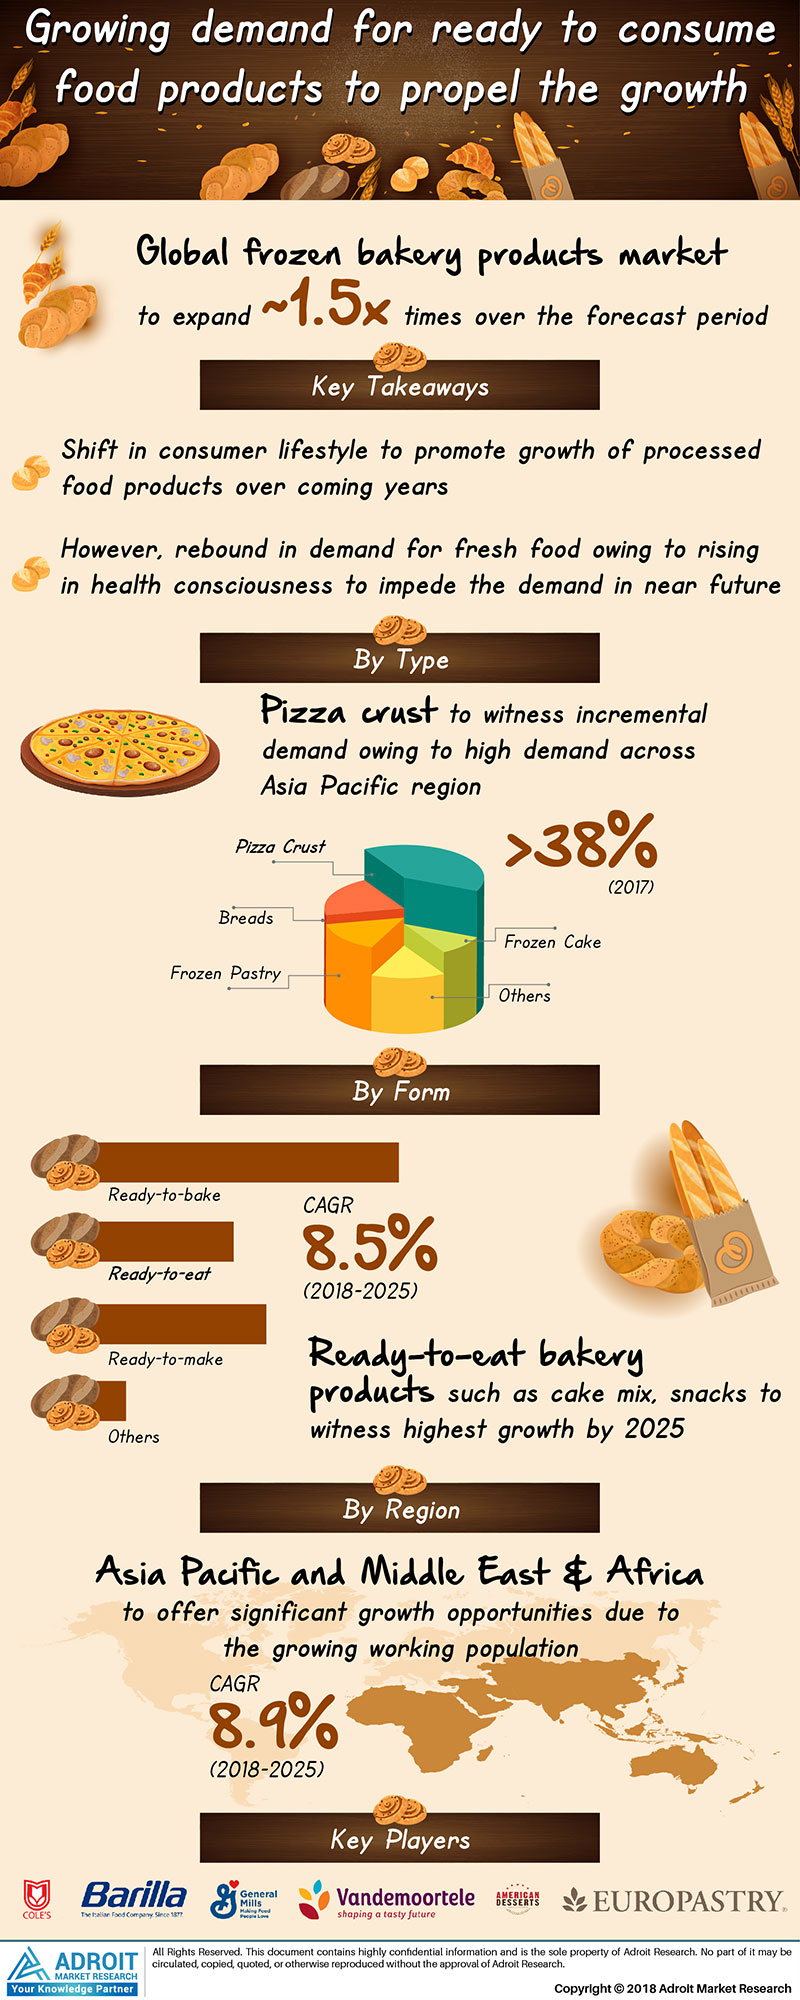 Global Frozen Bakery Products Market Size 2017 by Type, Form, Region and Forecast 2018 to 2025